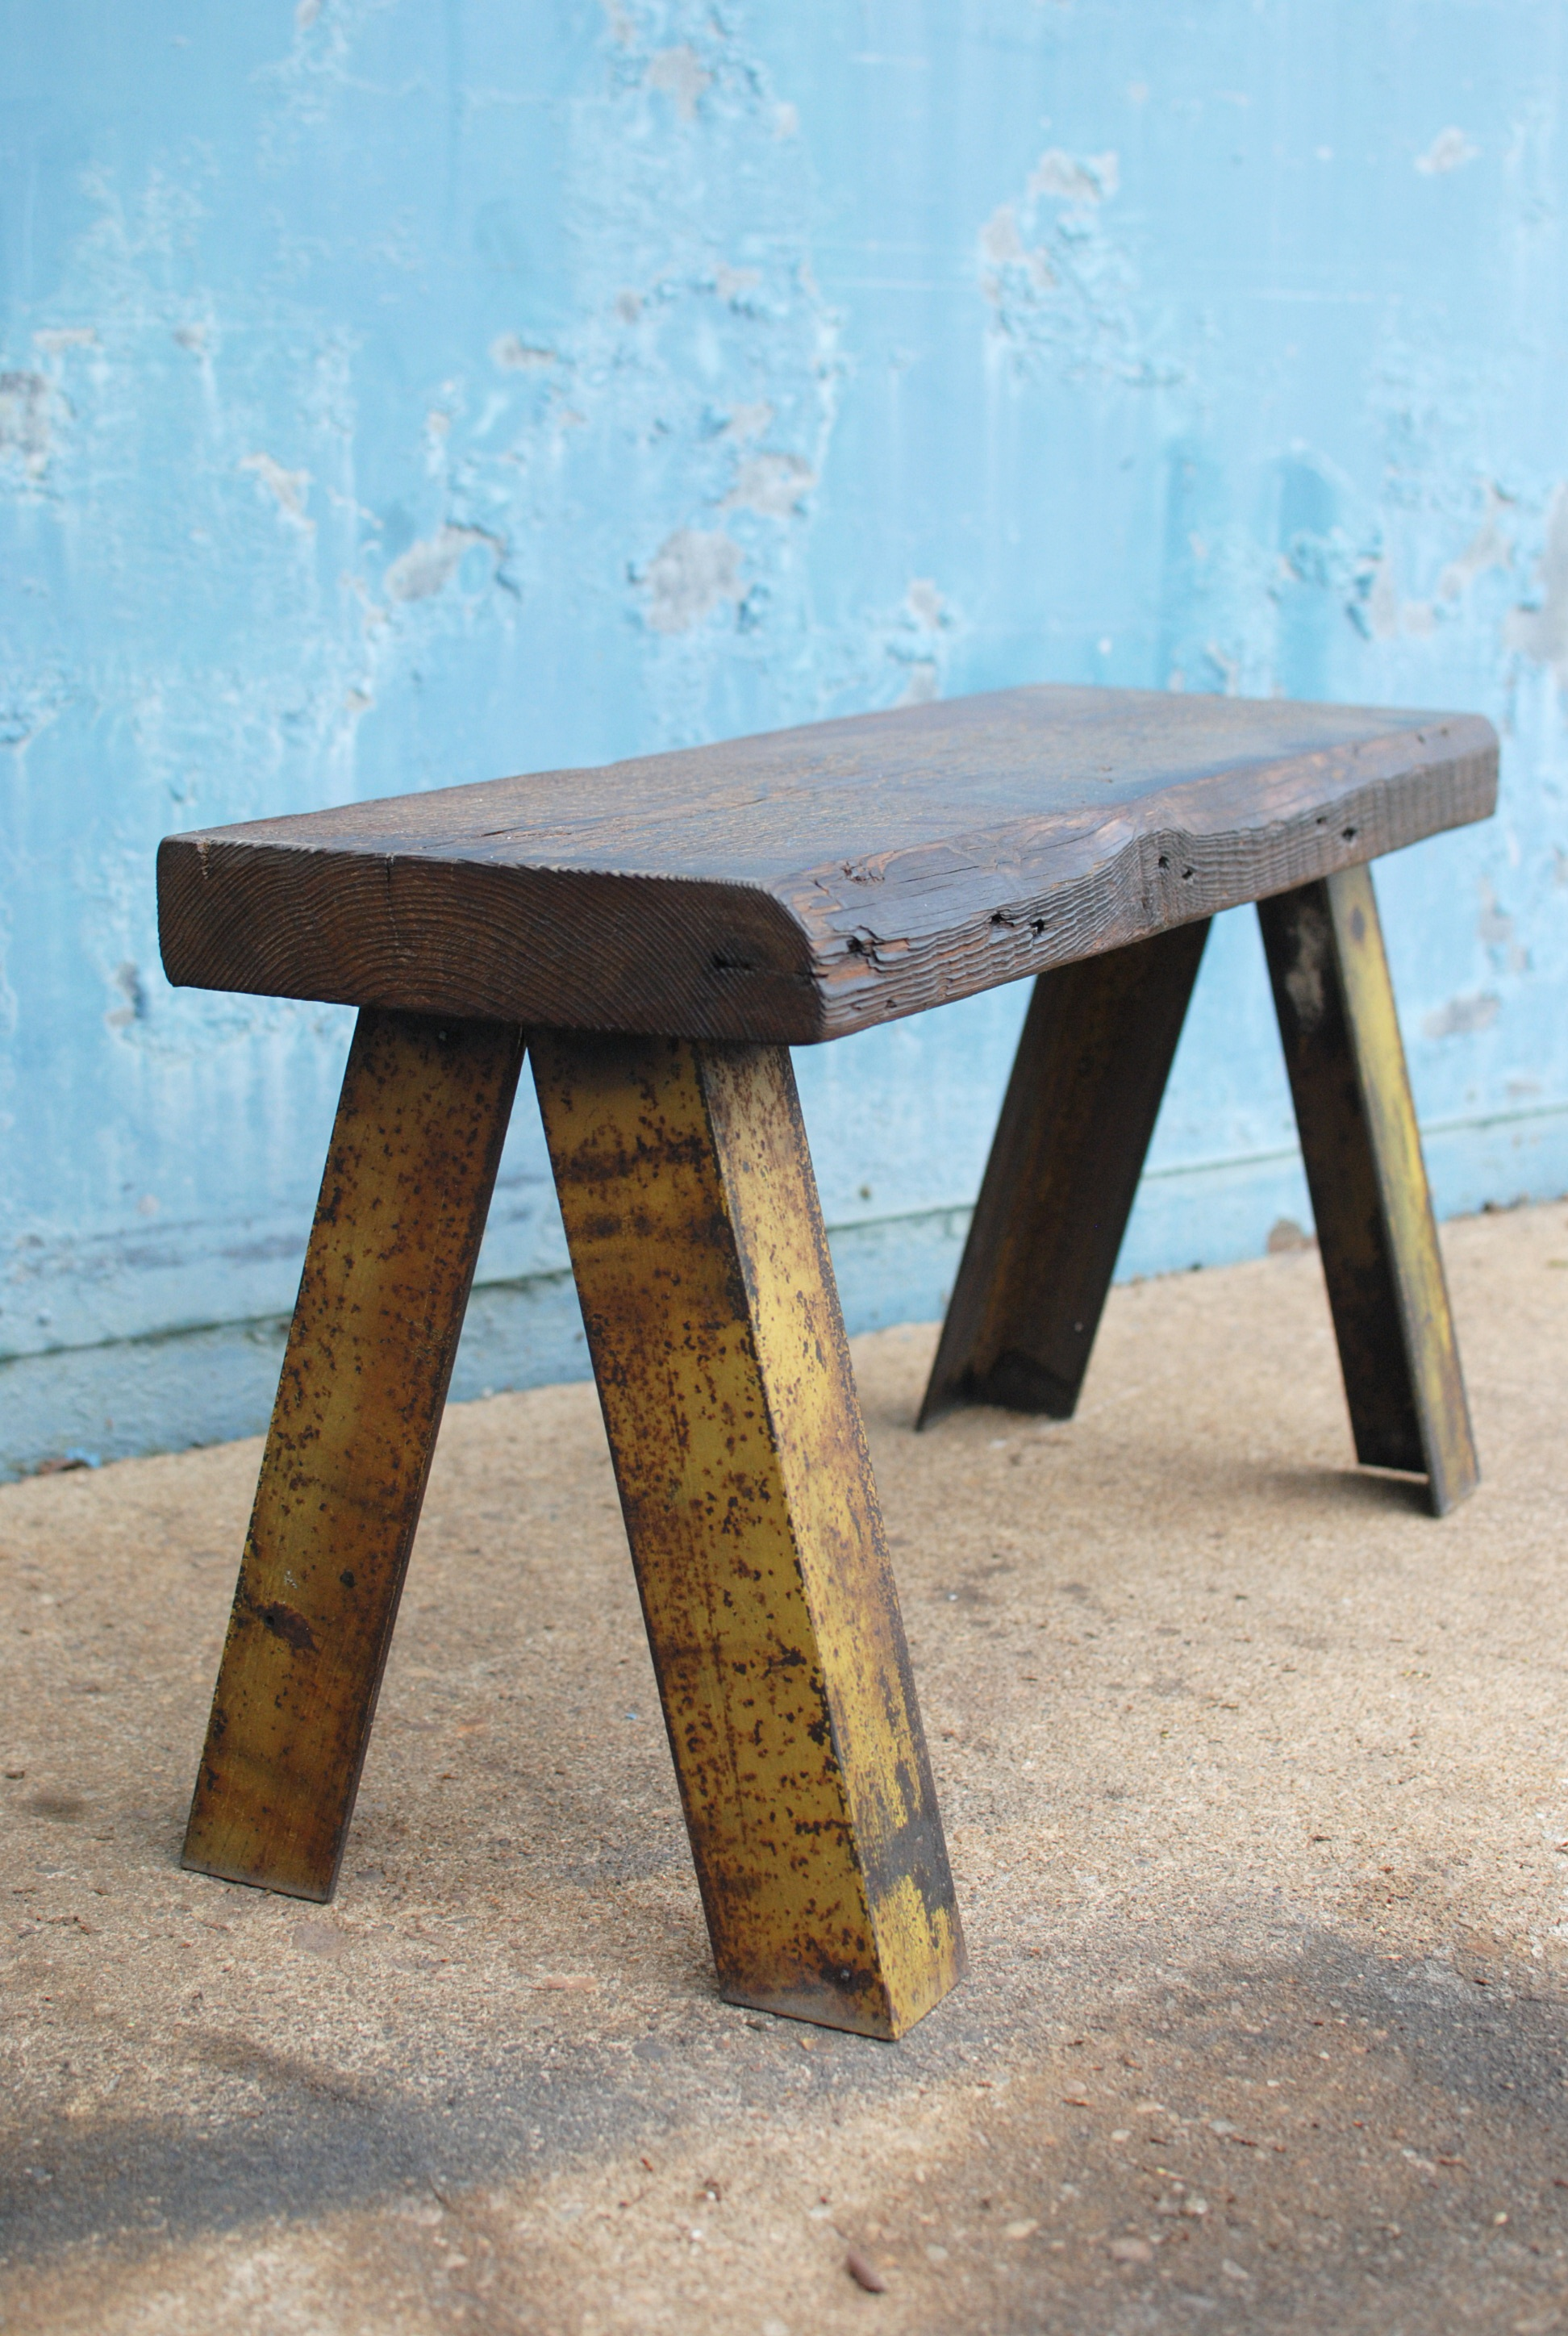 Interior bench with wood seat and metal legs